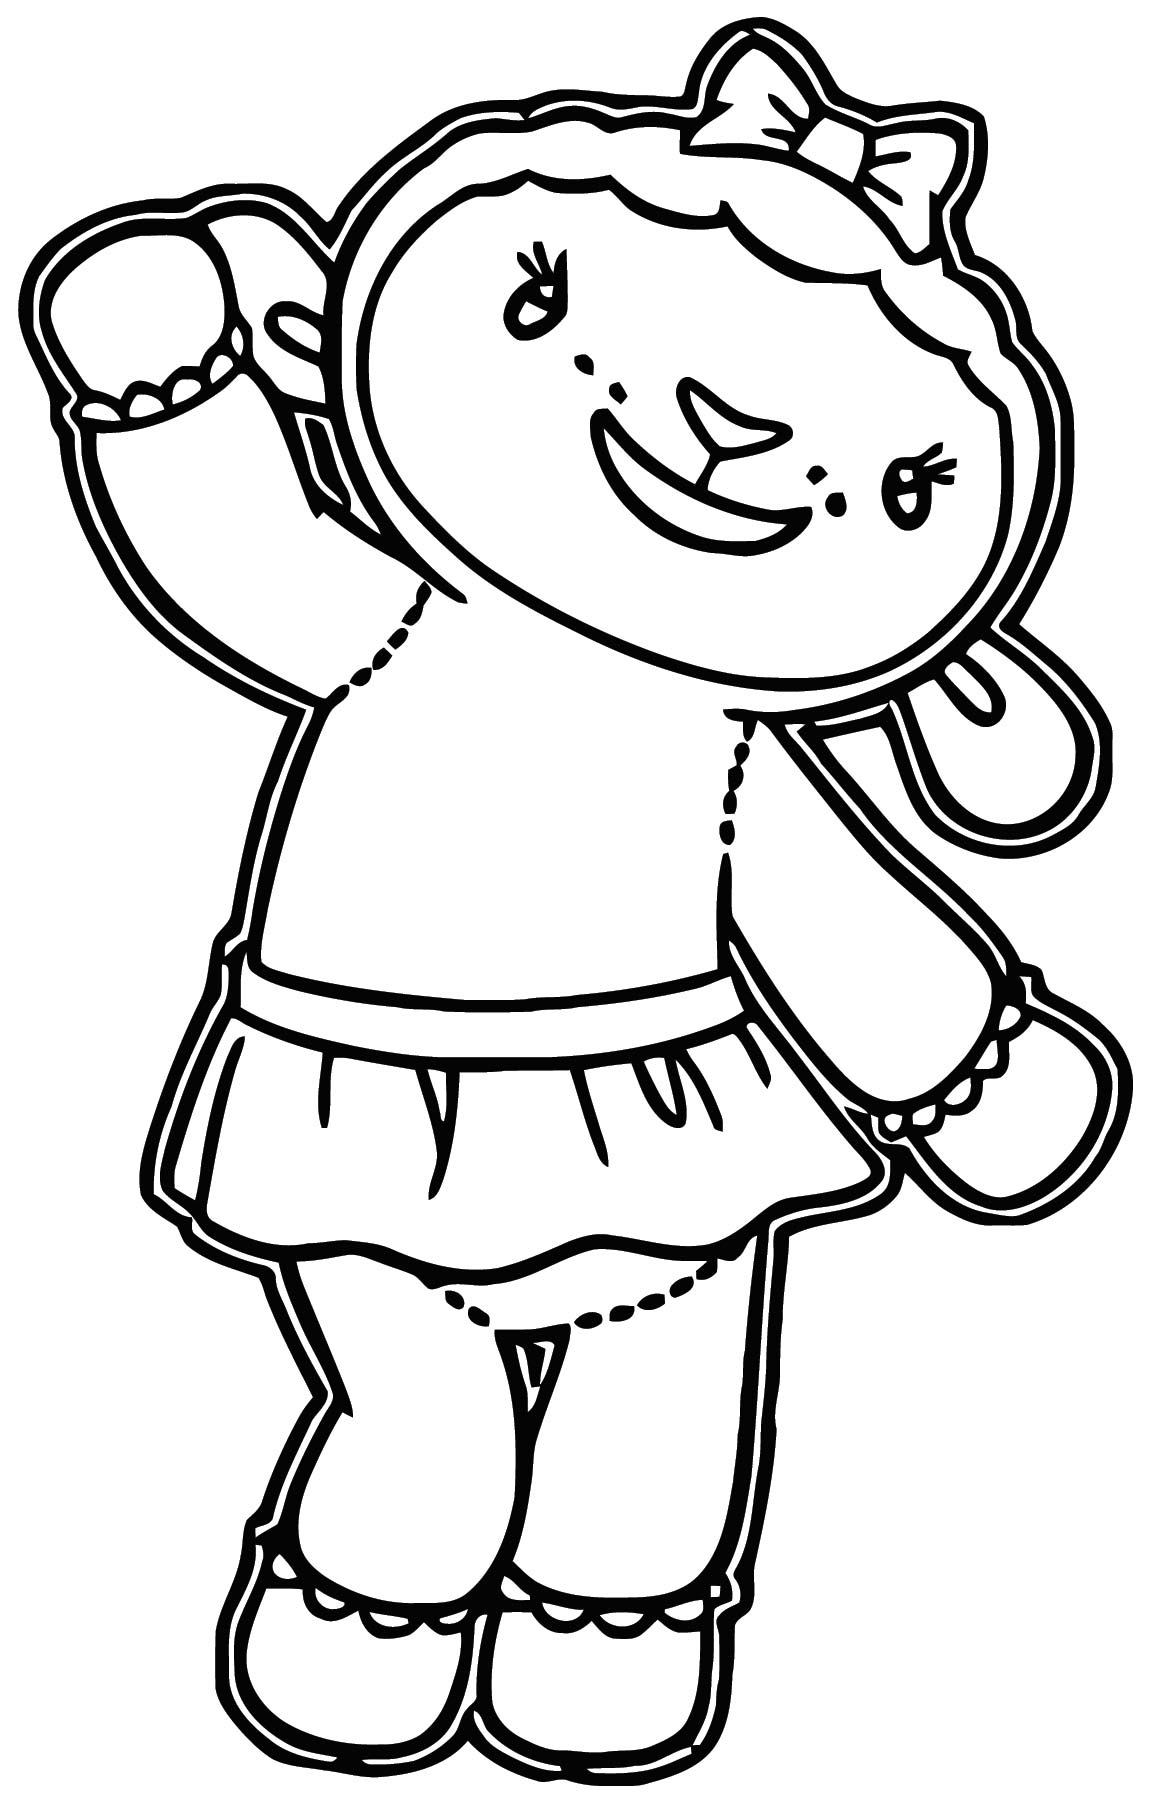 lambie Cartoon coloring page